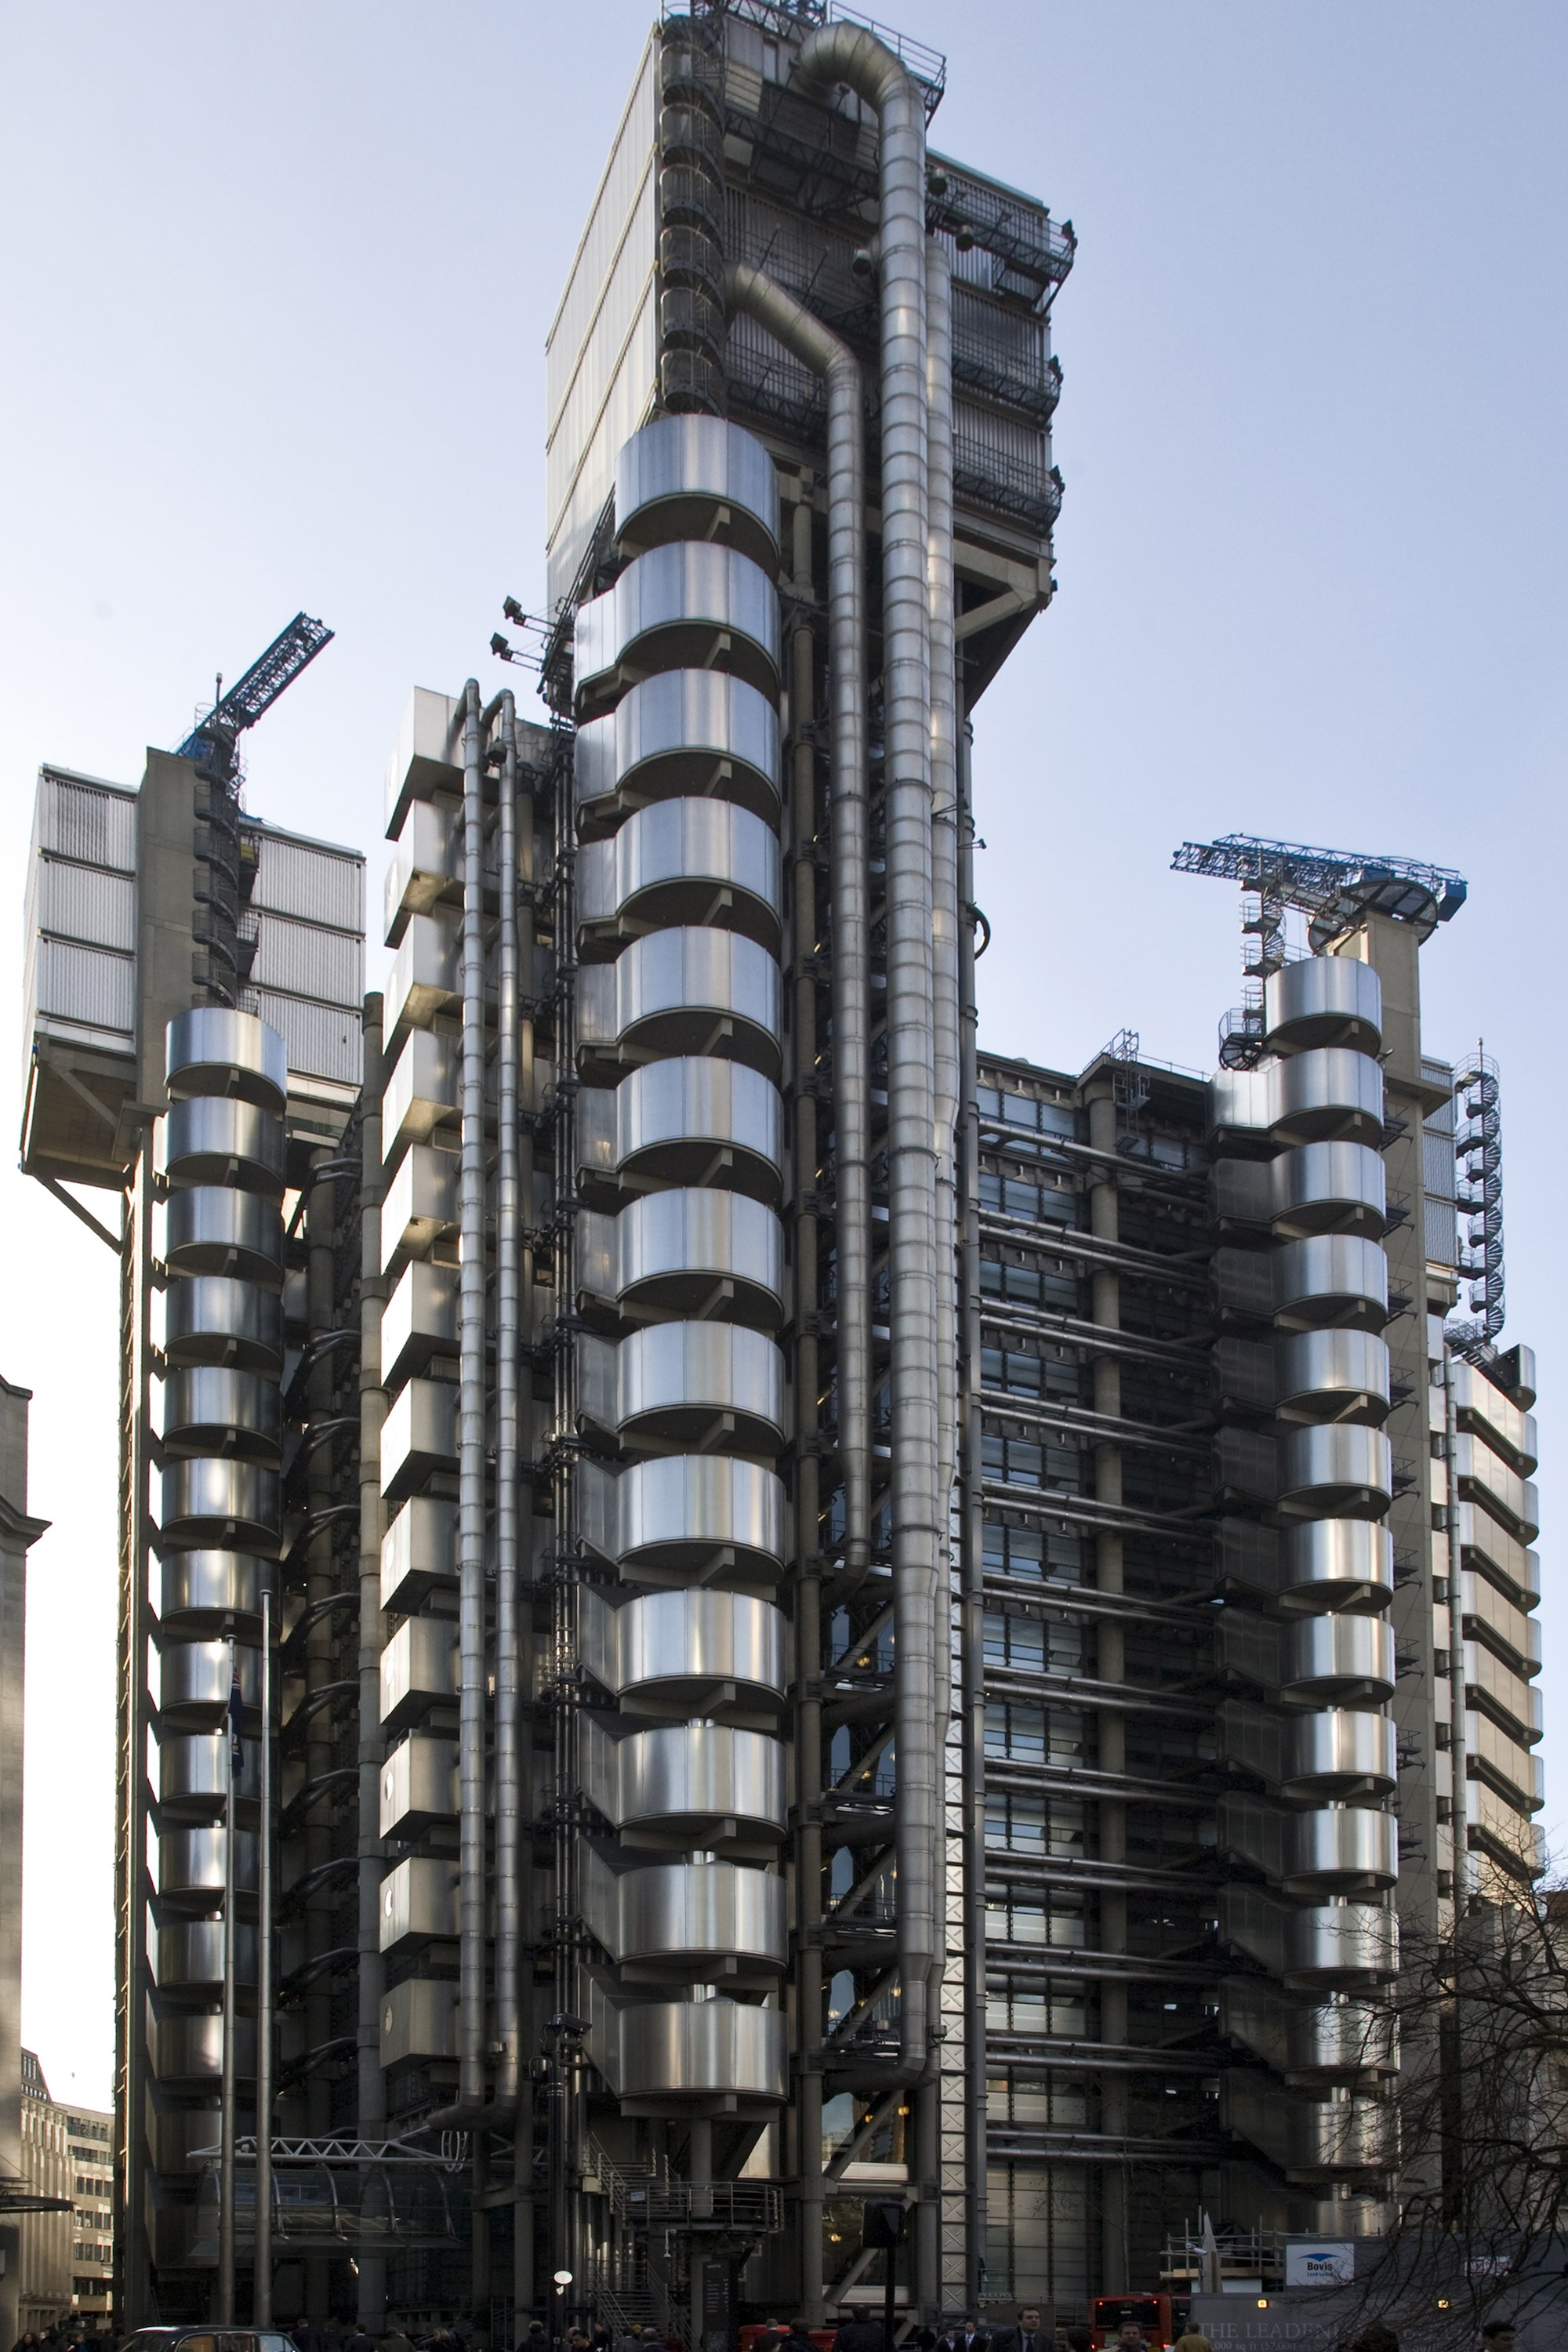 London S Top 10 Iconic Buildings